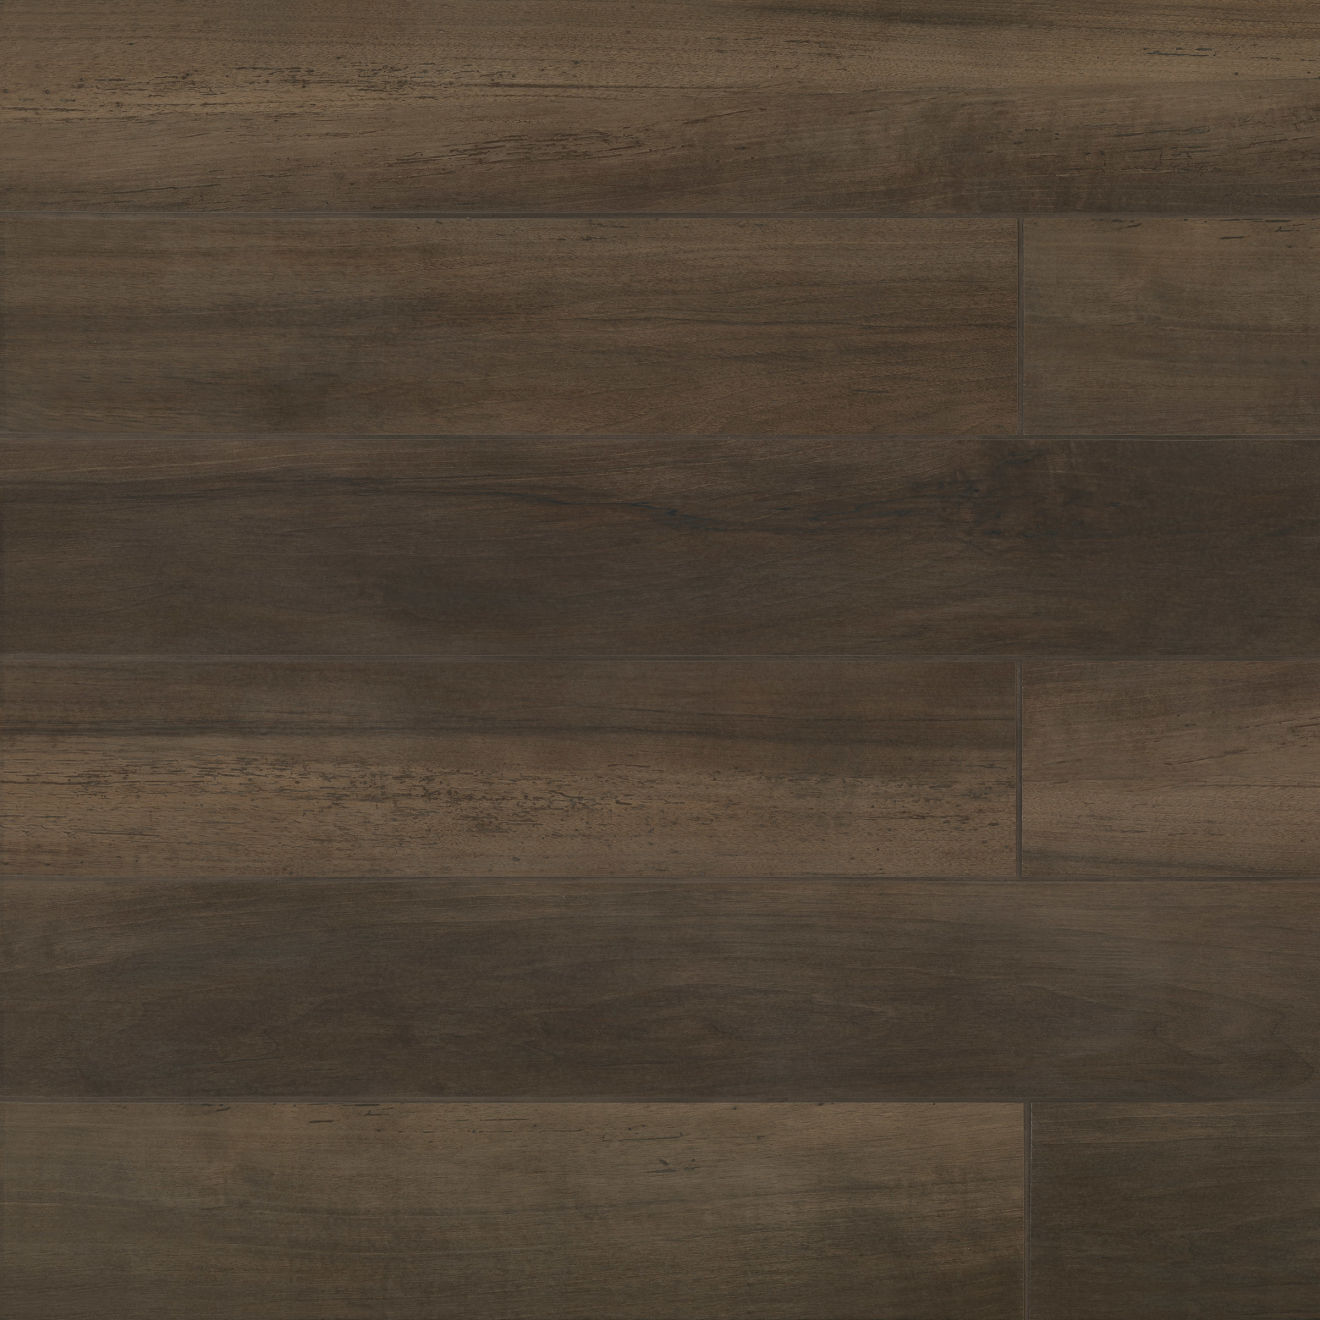 Antique 8 X 48 Floor Wall Tile In Wenge